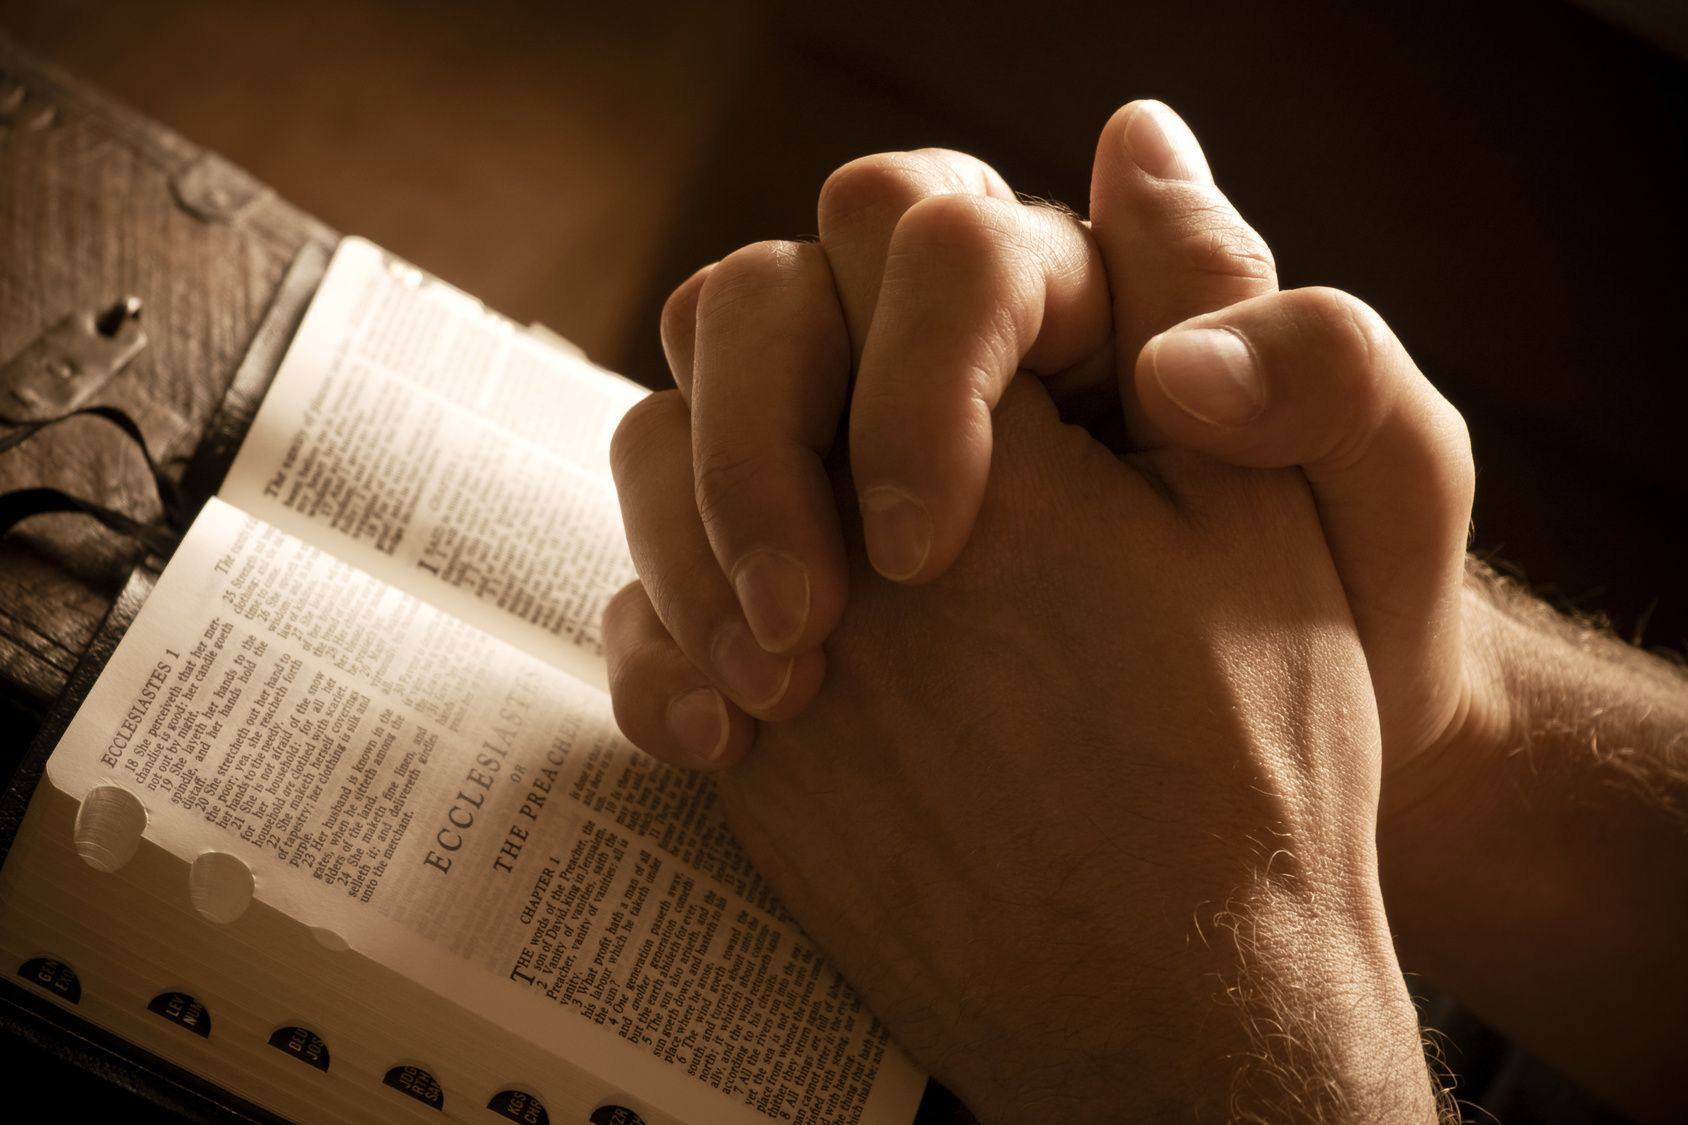 Pictures Of Bibles And Praying Hands